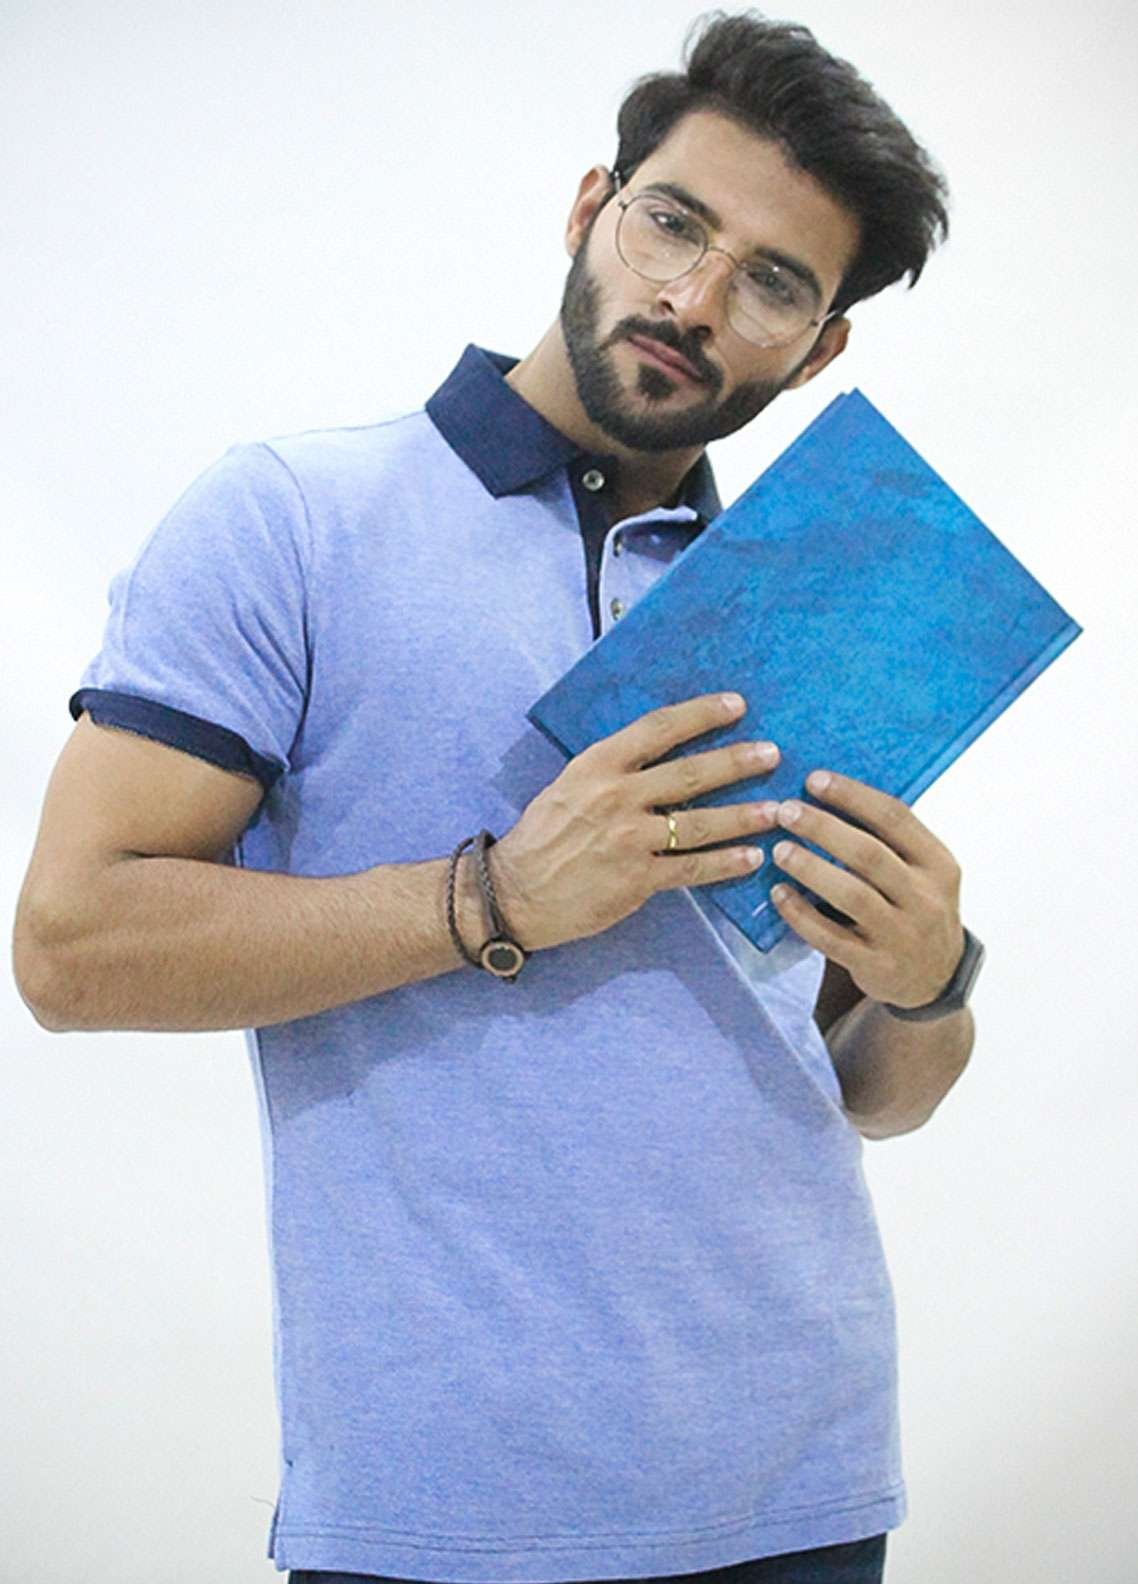 Red Tree Jersey Polo T-Shirts for Men - Blue RT1577